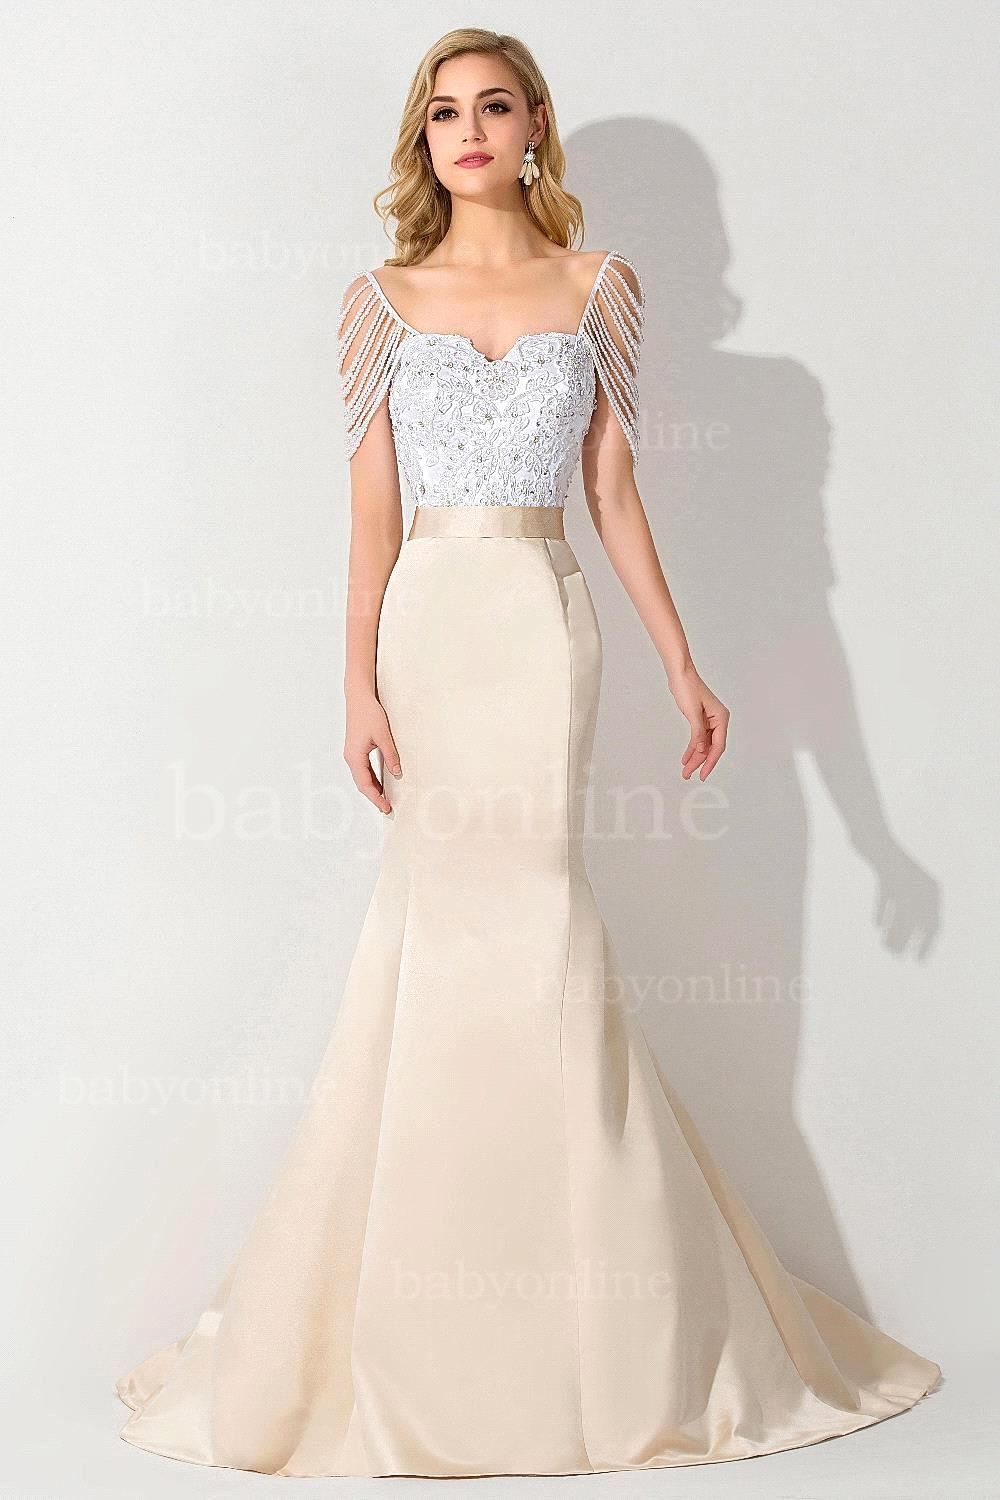 Adrianna Papell Floral Beaded Long Champagne Dress Evening  Prom UK size 10 /&14